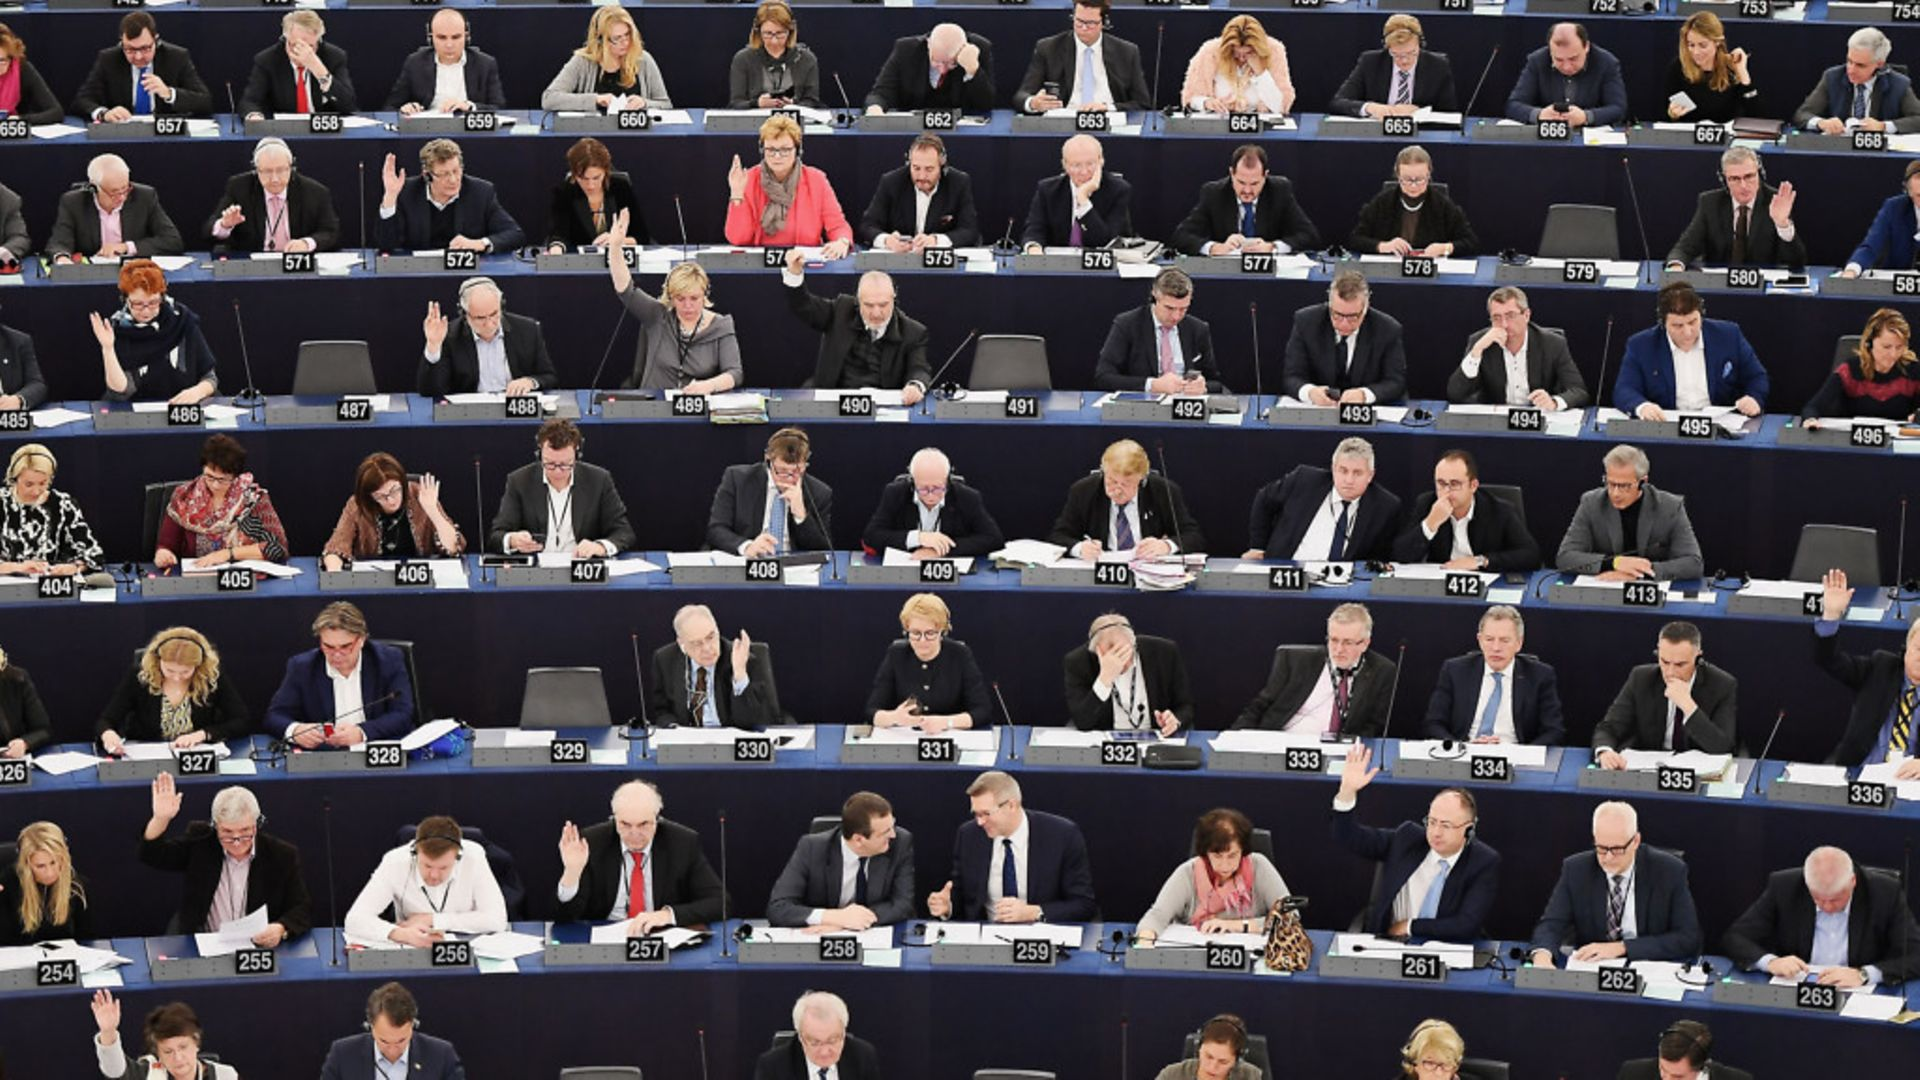 Members of the European Parliament take part in a voting session at the European Parliament in Strasbourg - Credit: AFP/Getty Images